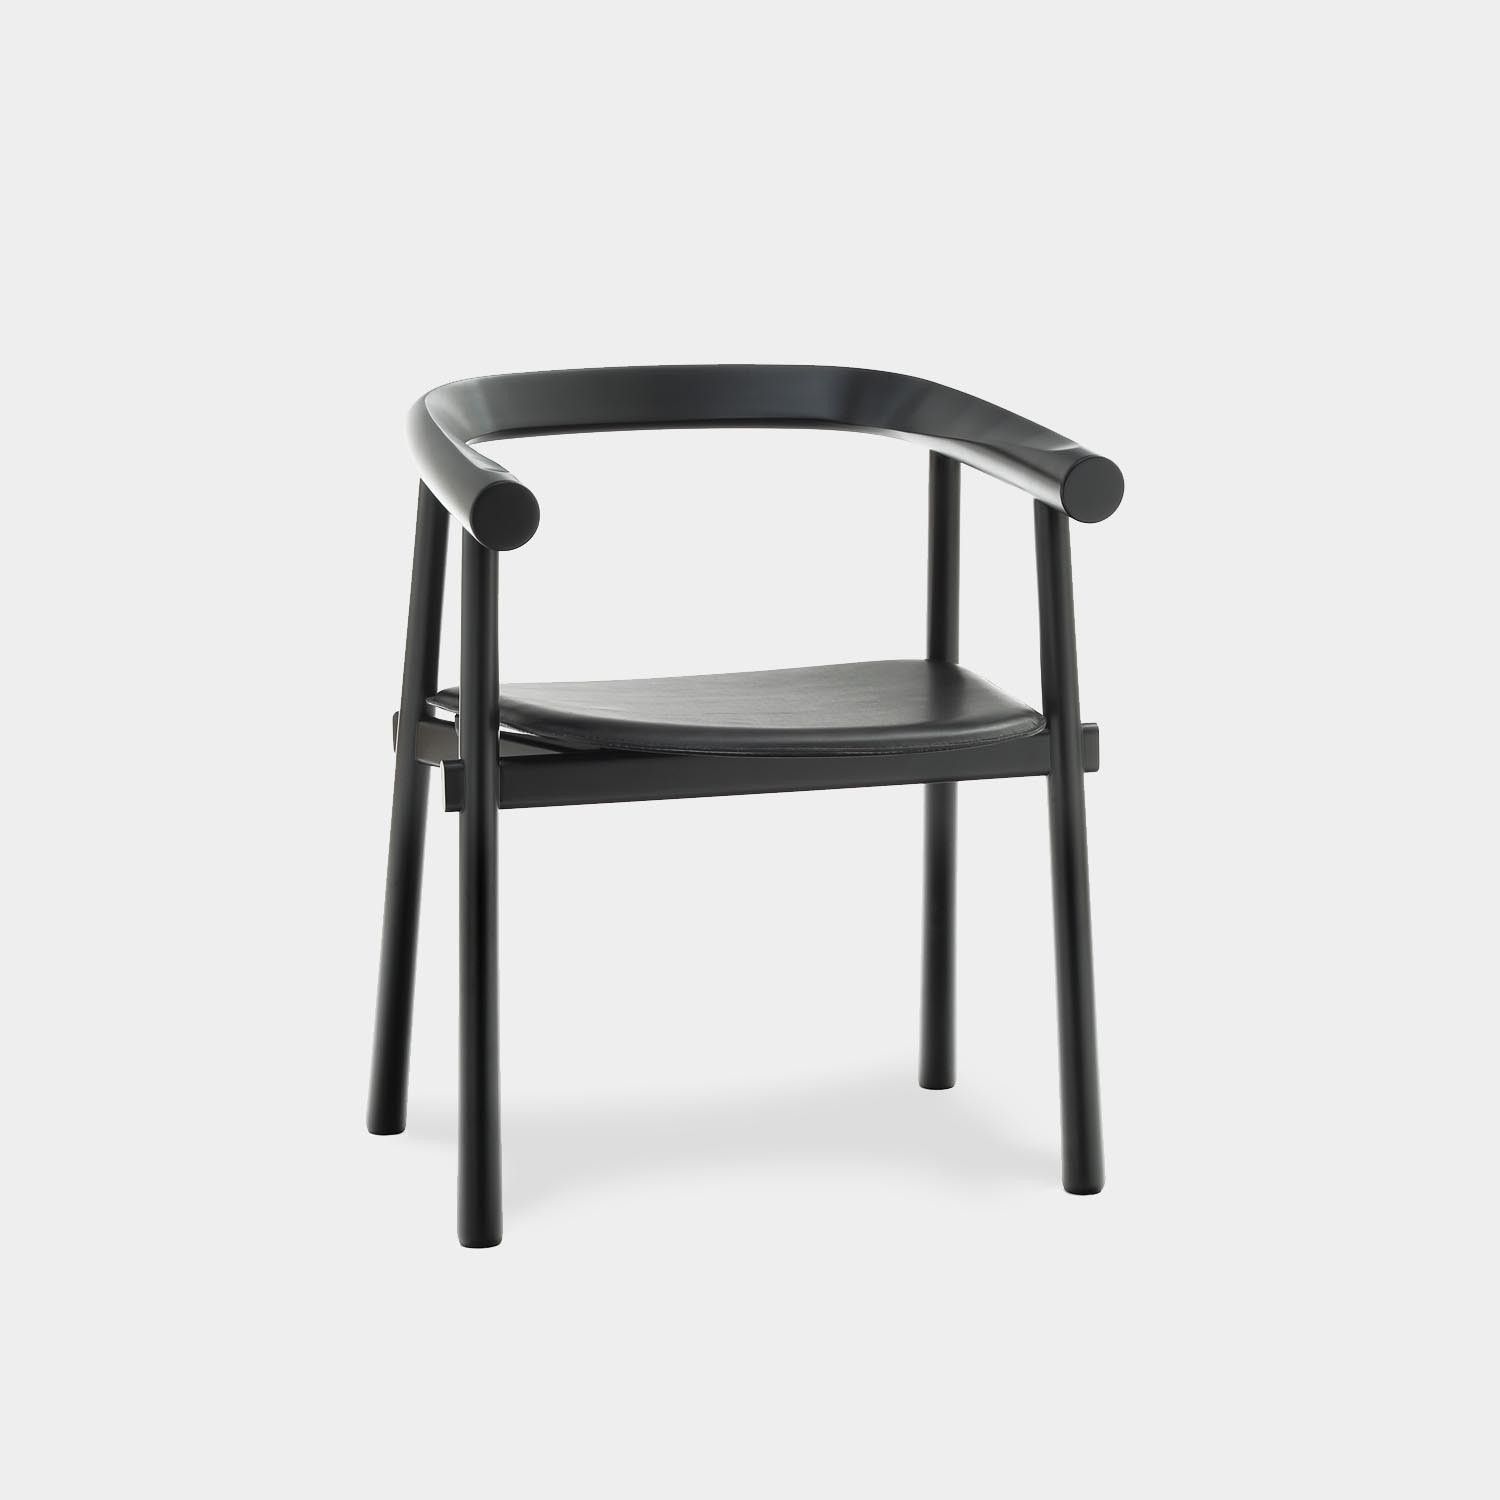 Altay Dining Chair, Black Structure, Black Leather Seat